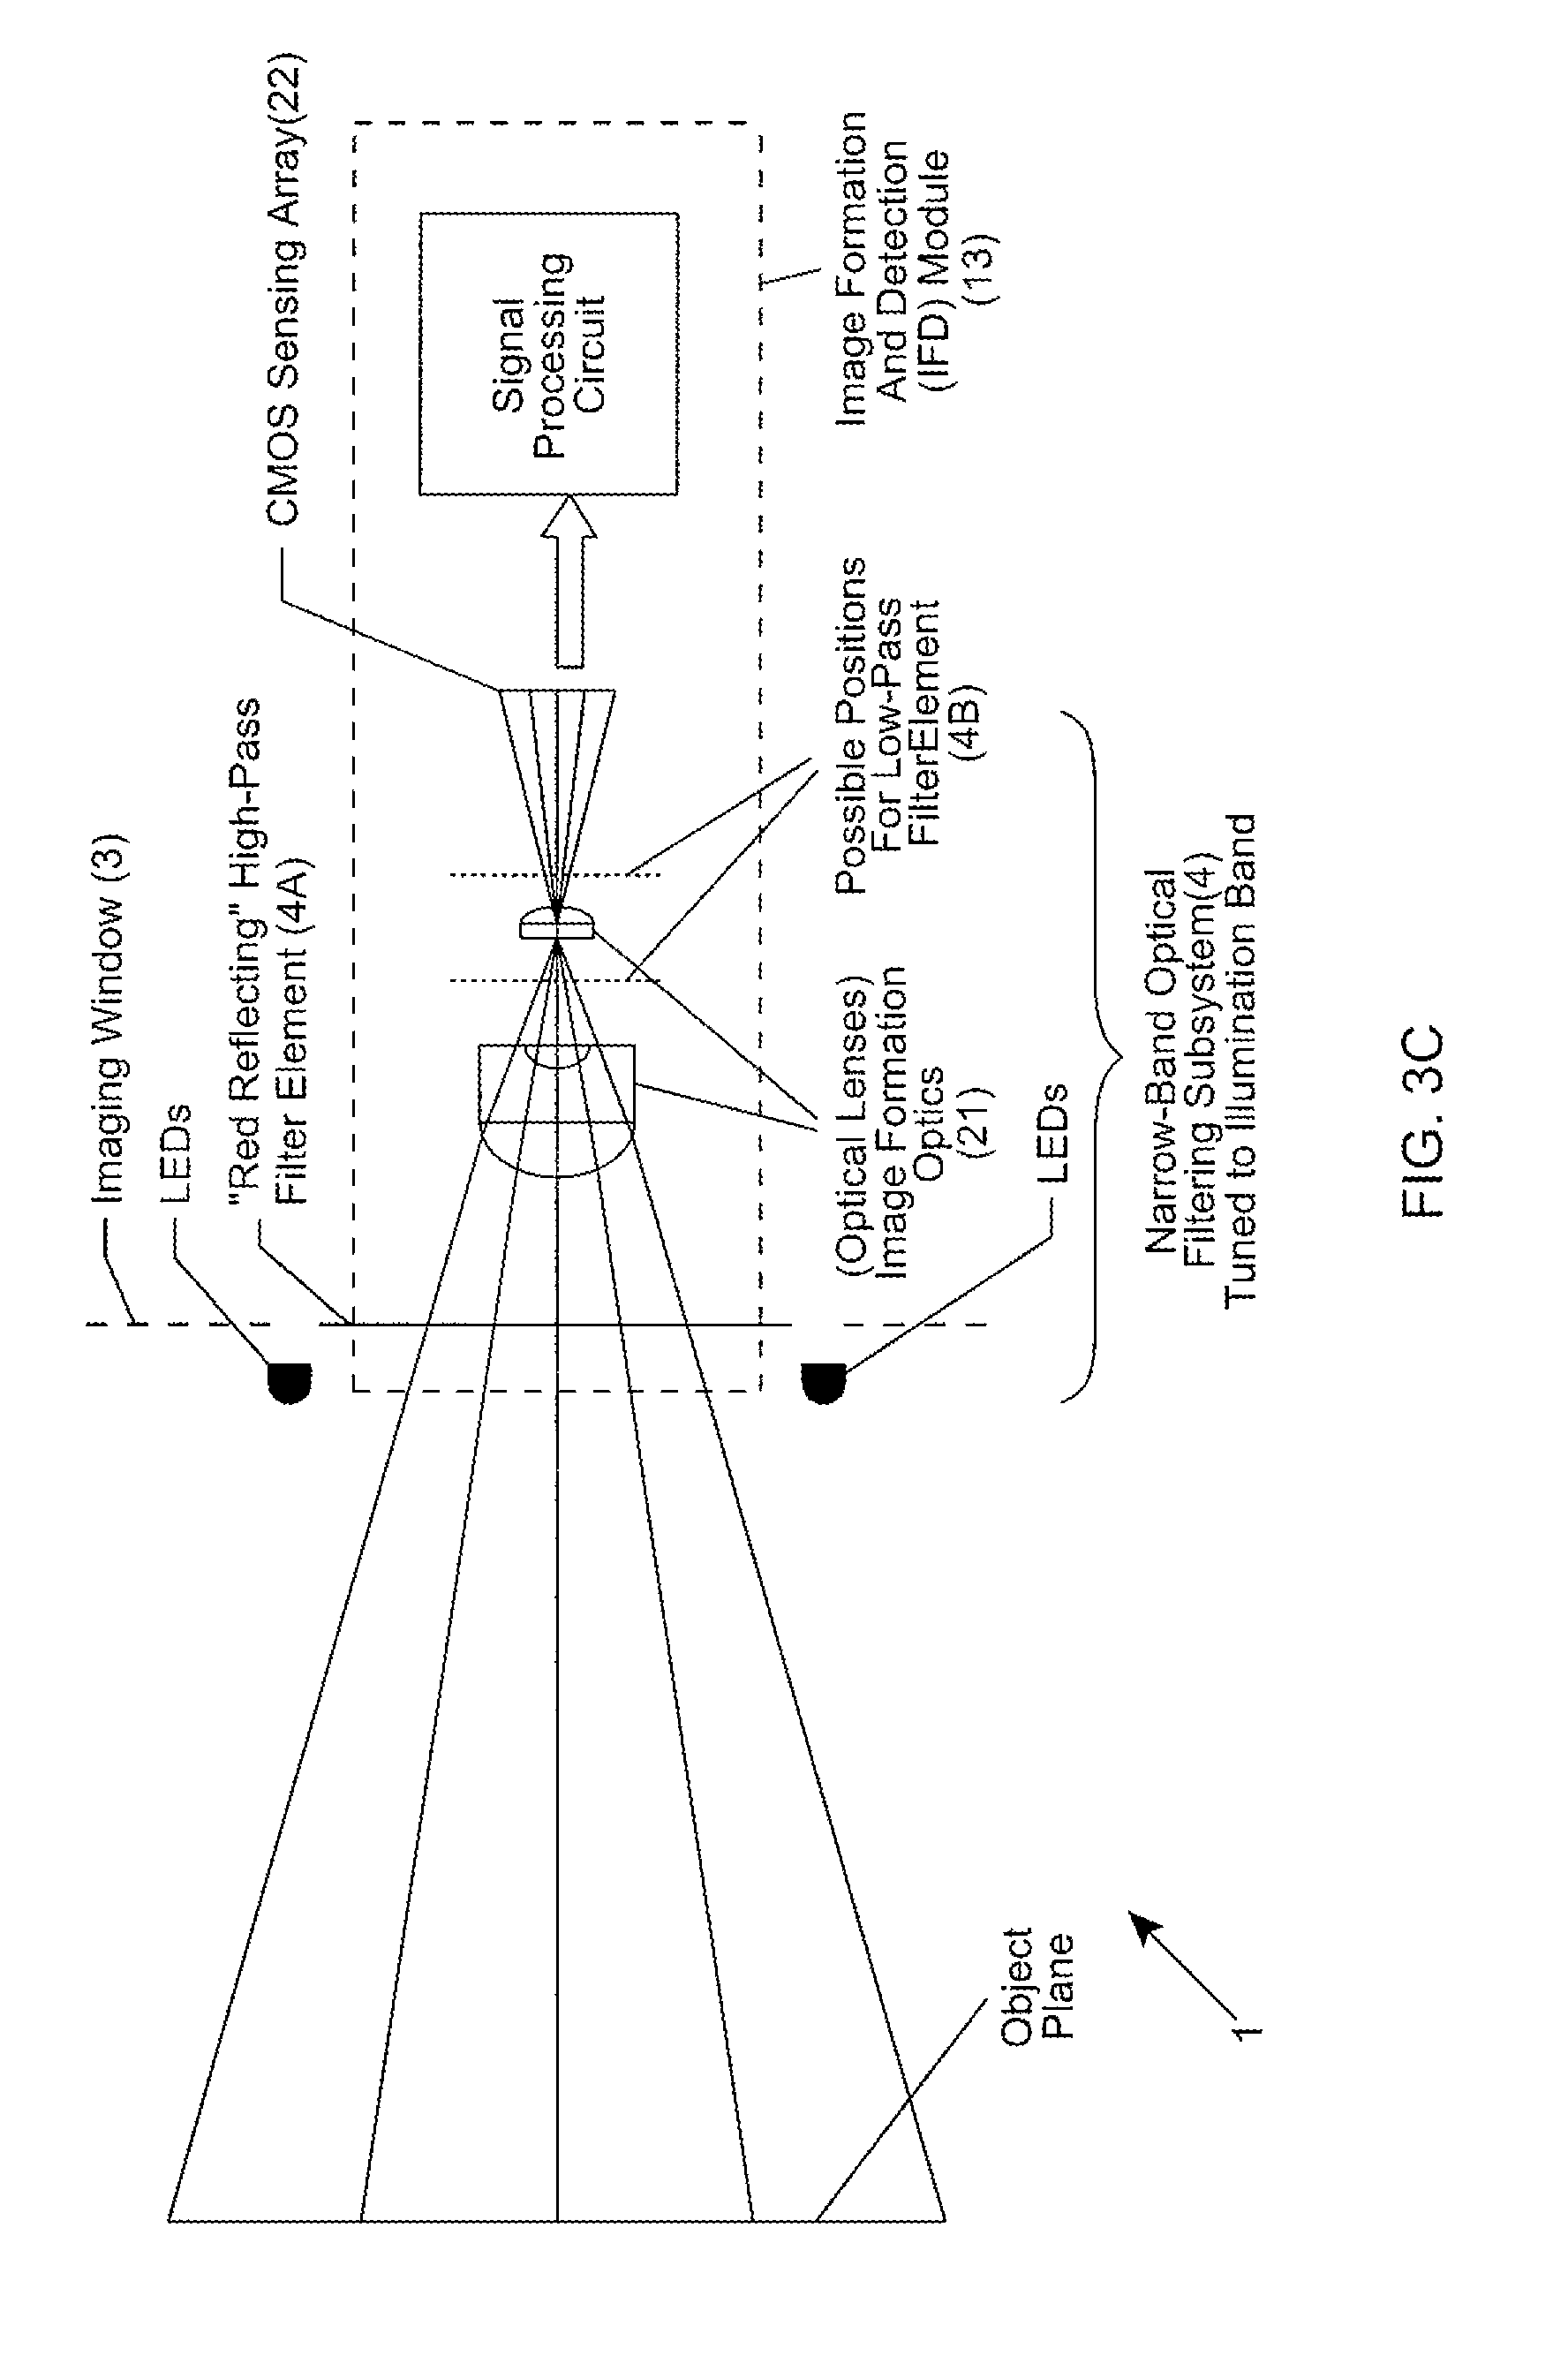 Patent Us 9355288 B2 Block Diagram Of Hidden Active Cell Phone Detector Images